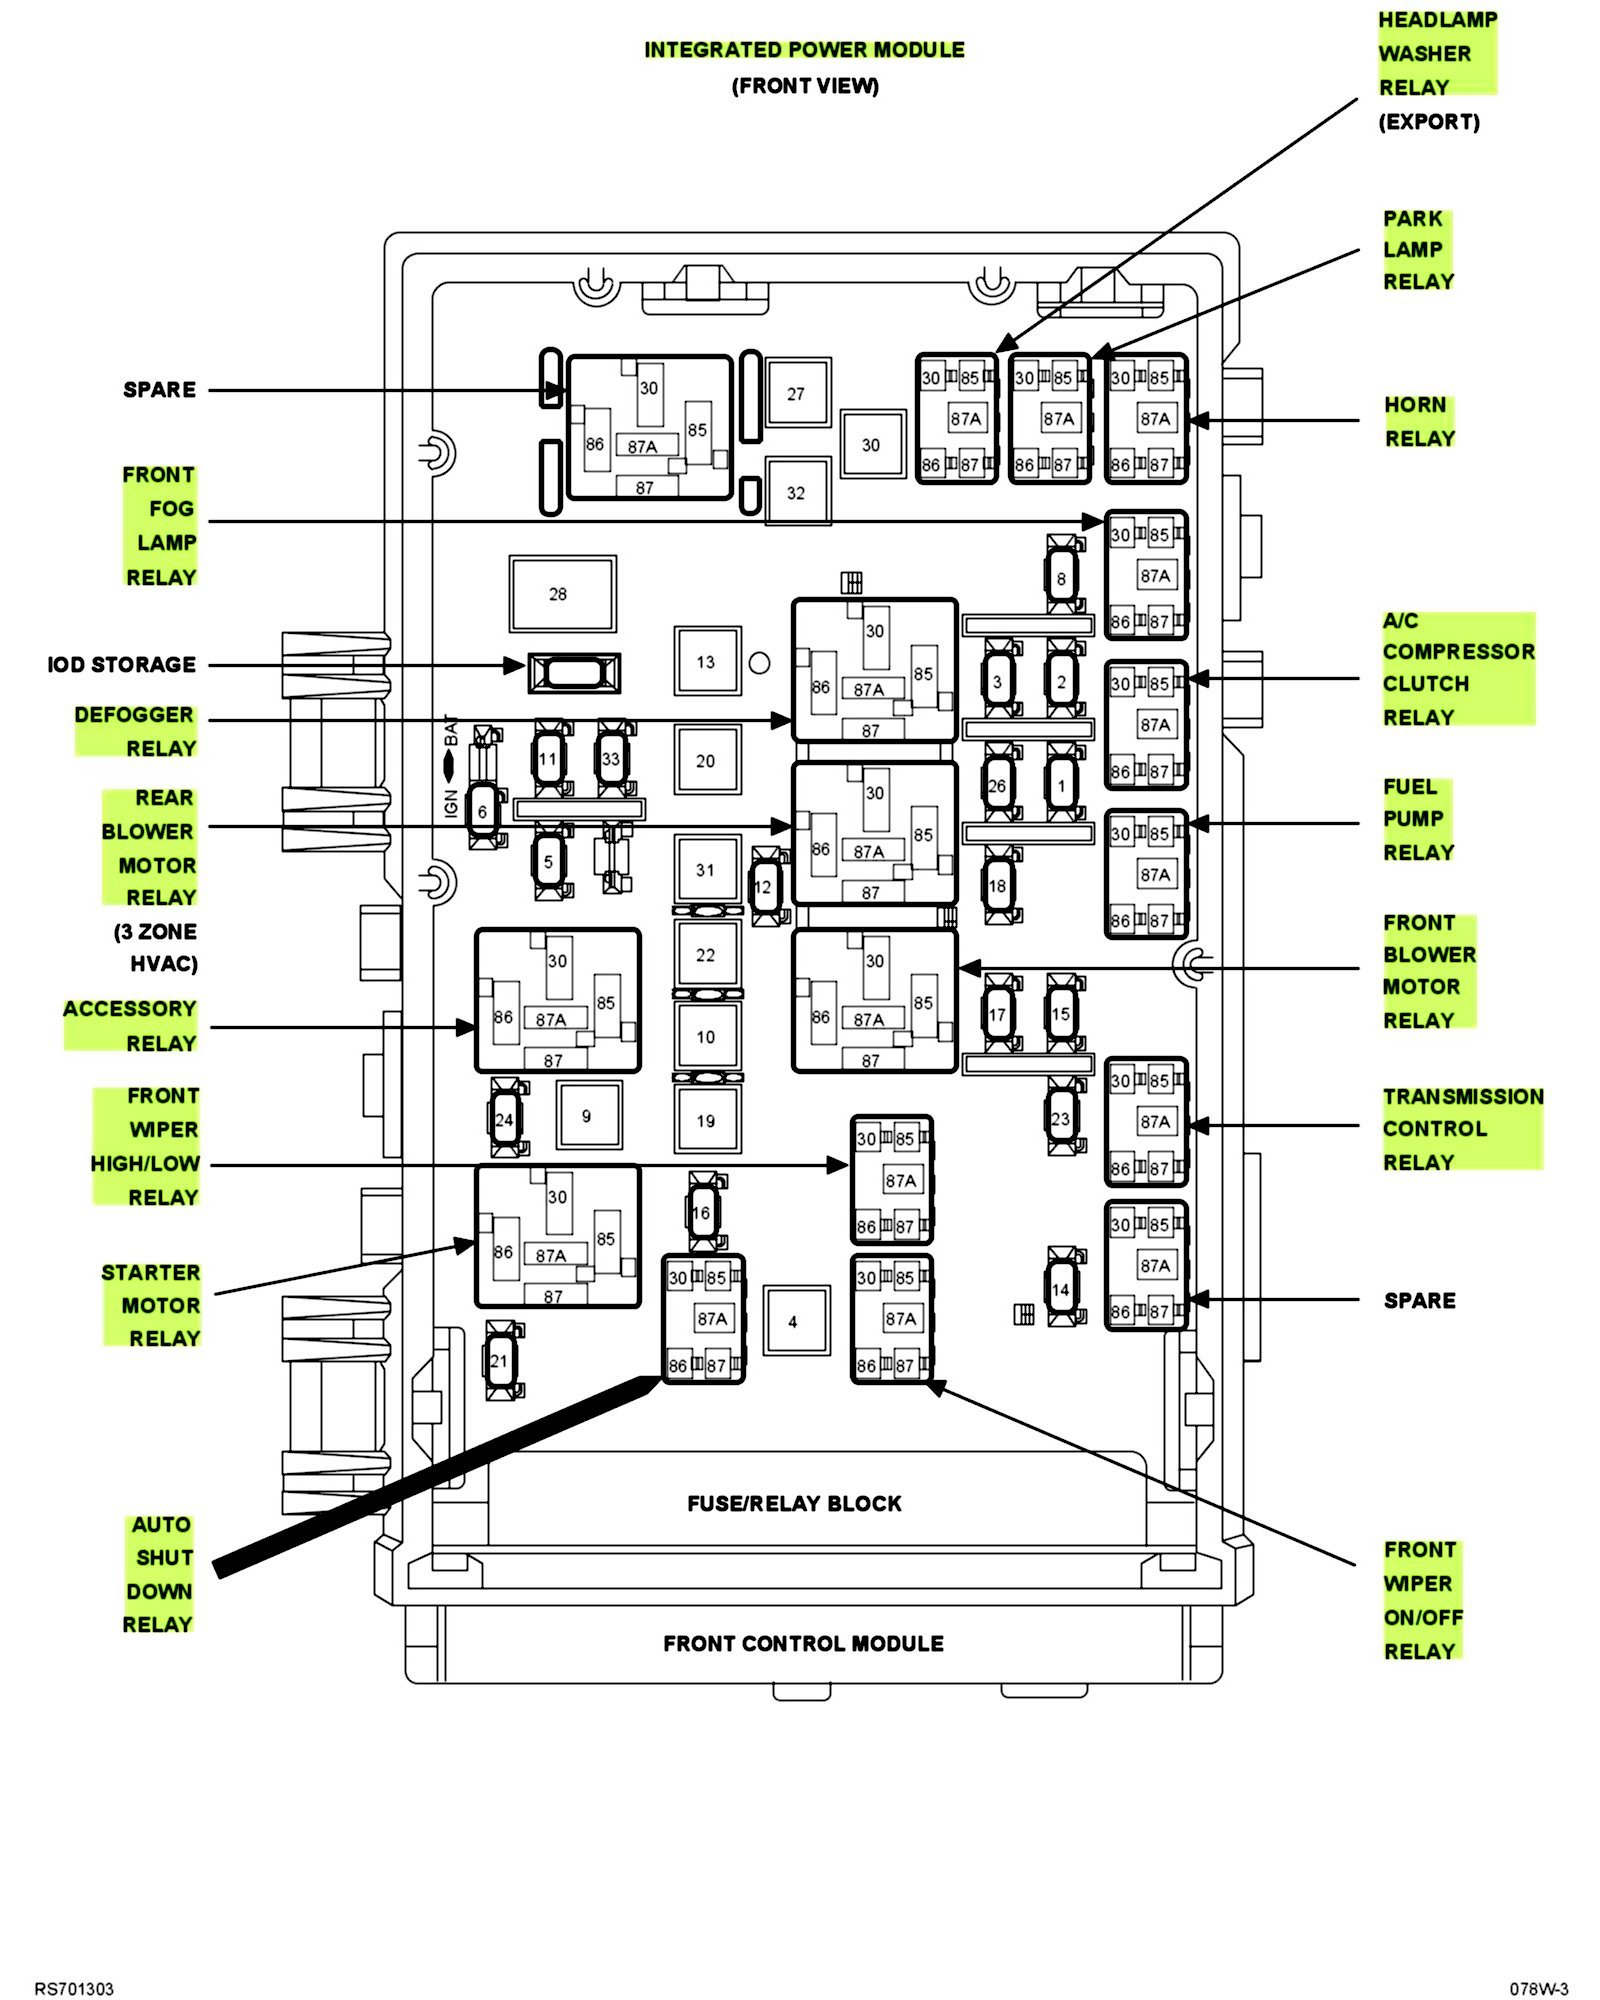 2013 Dodge Dart Interior Fuse Box Diagram